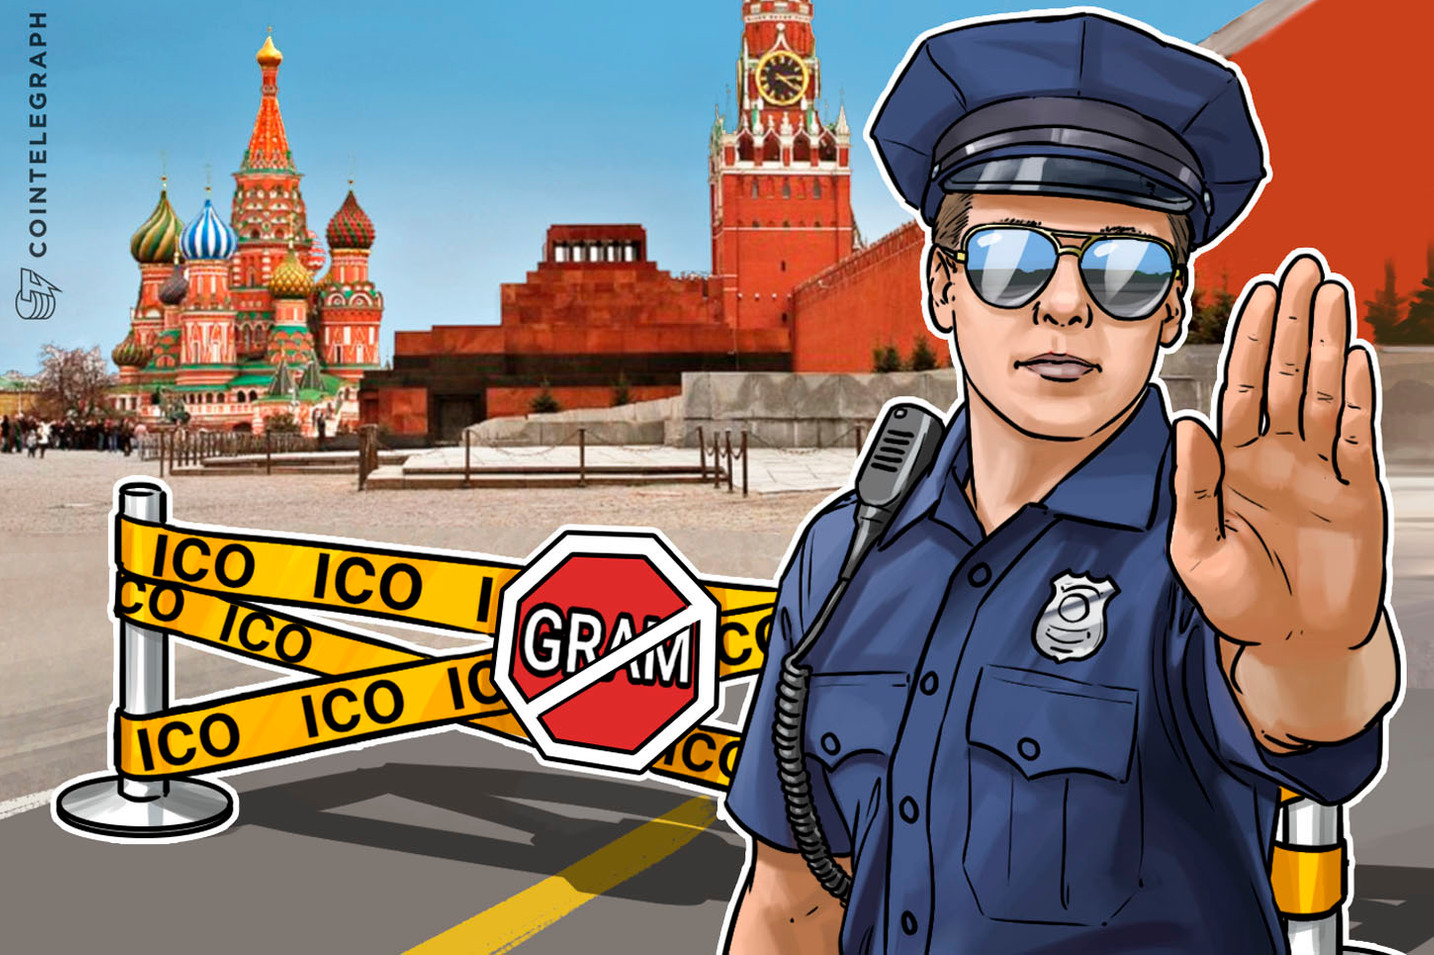 Russian Media: Telegram Was Banned Due To ICO, Not 'Keys And Terrorism'